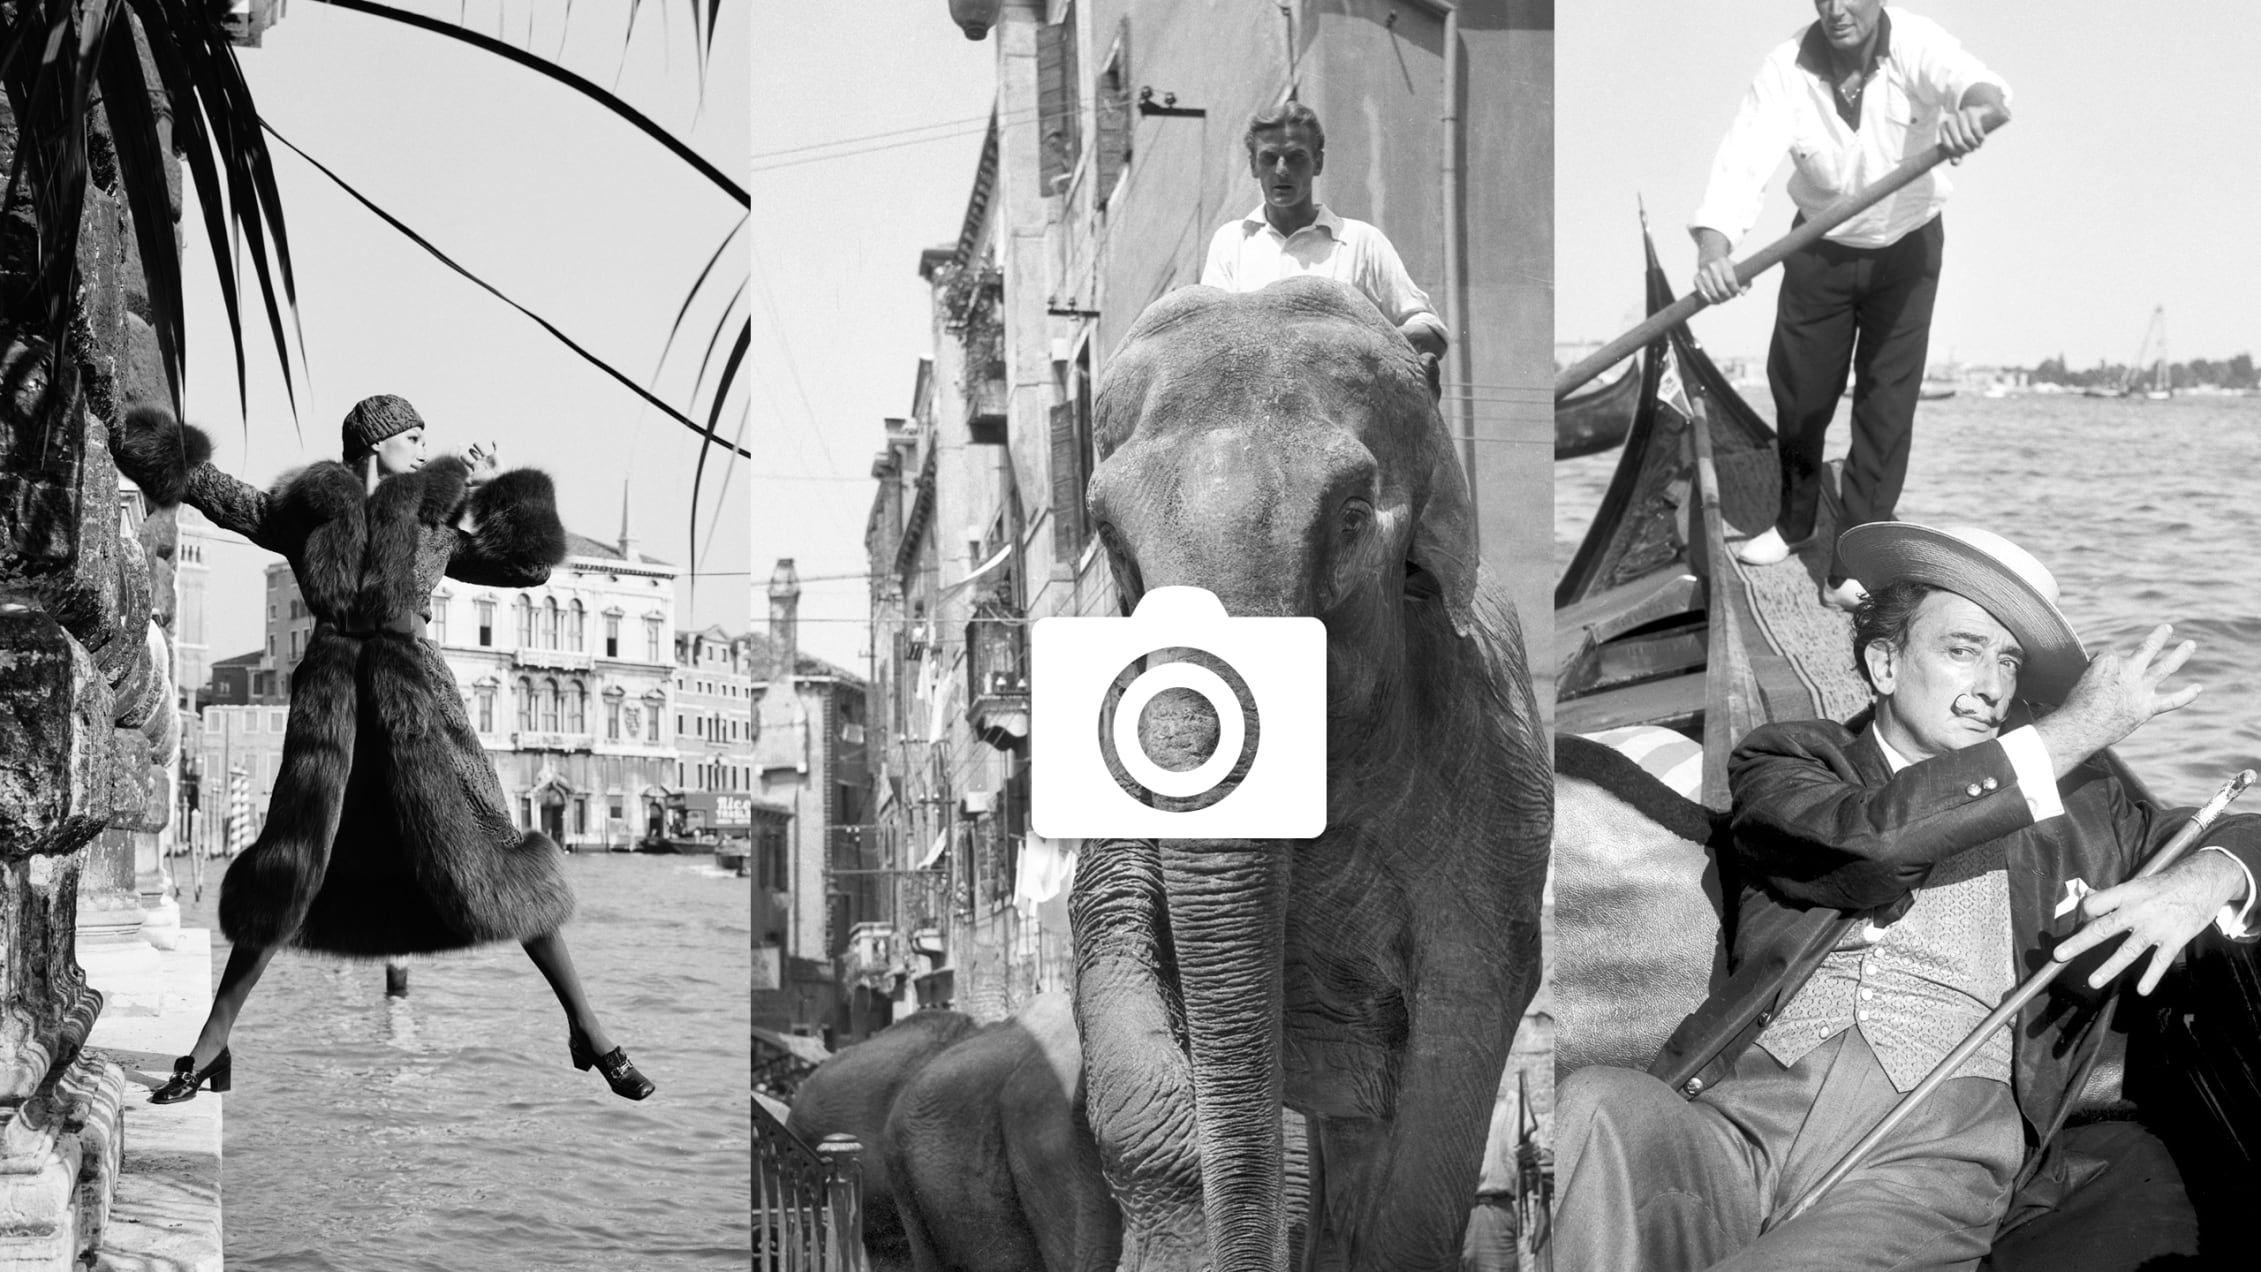 See Venice Photos From 'Dolce Vita' Era Before They're Lost